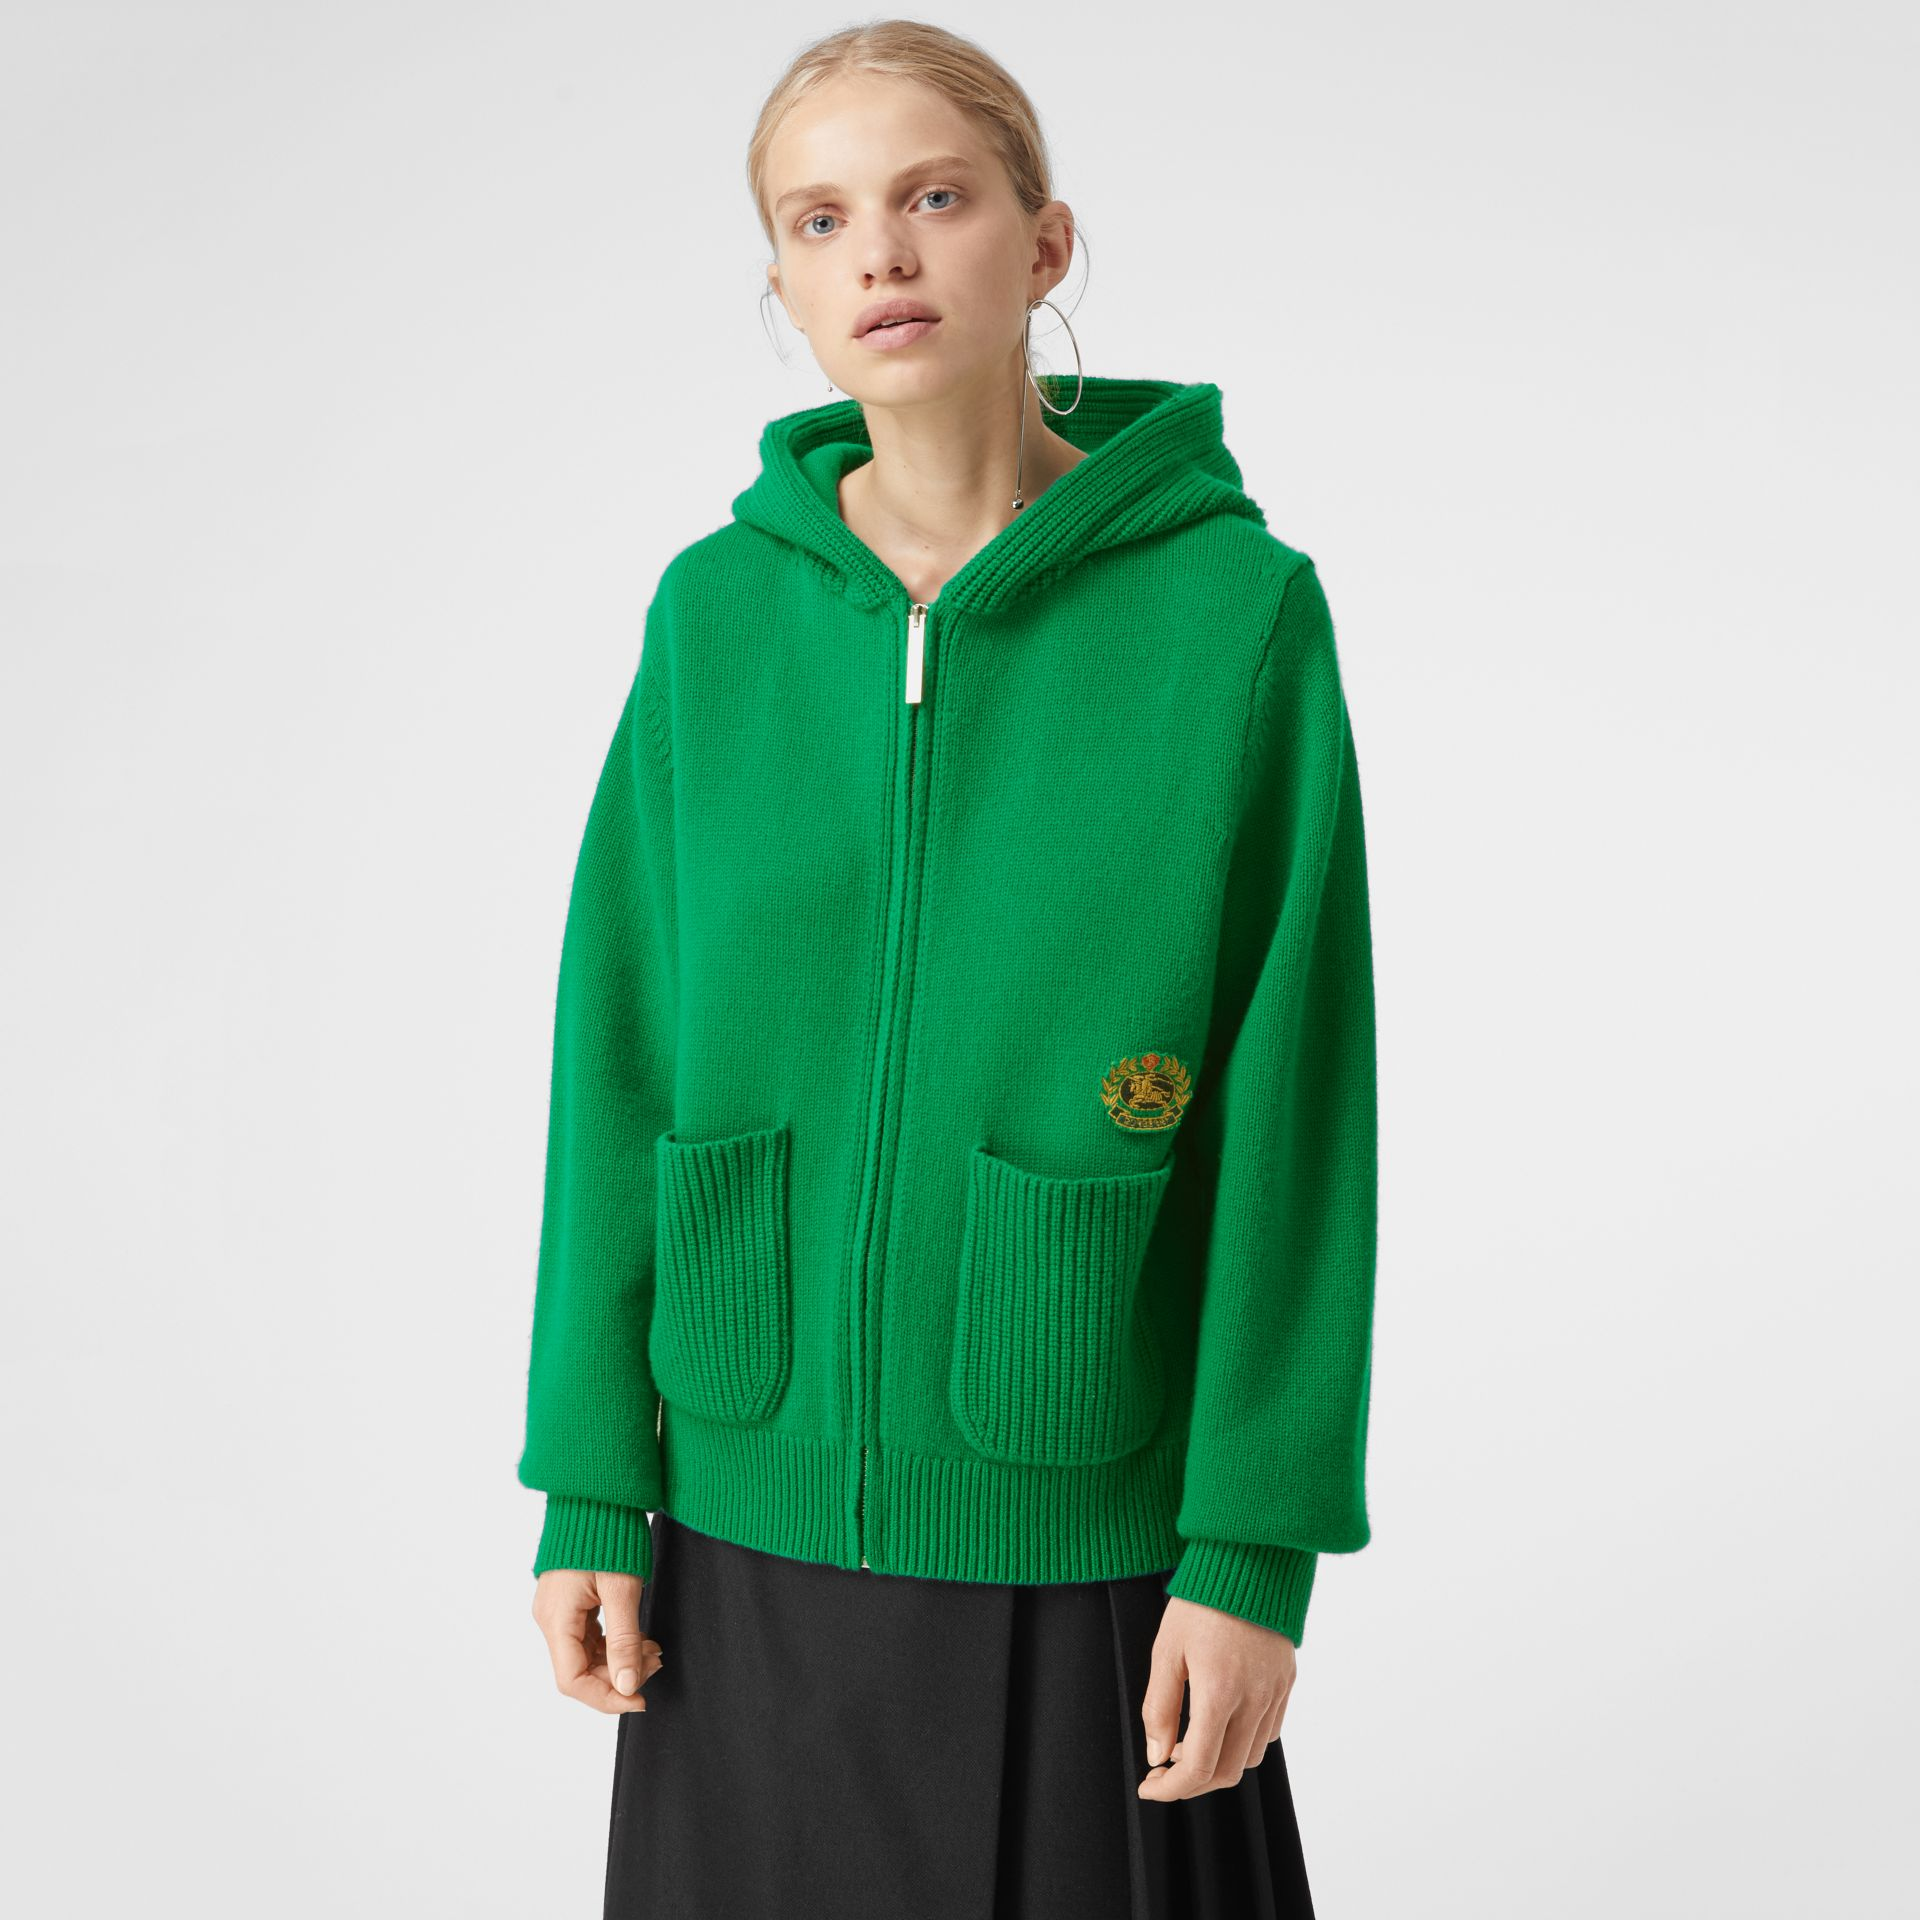 Embroidered Archive Logo Cashmere Hooded Top in Vibrant Green - Women | Burberry - gallery image 4